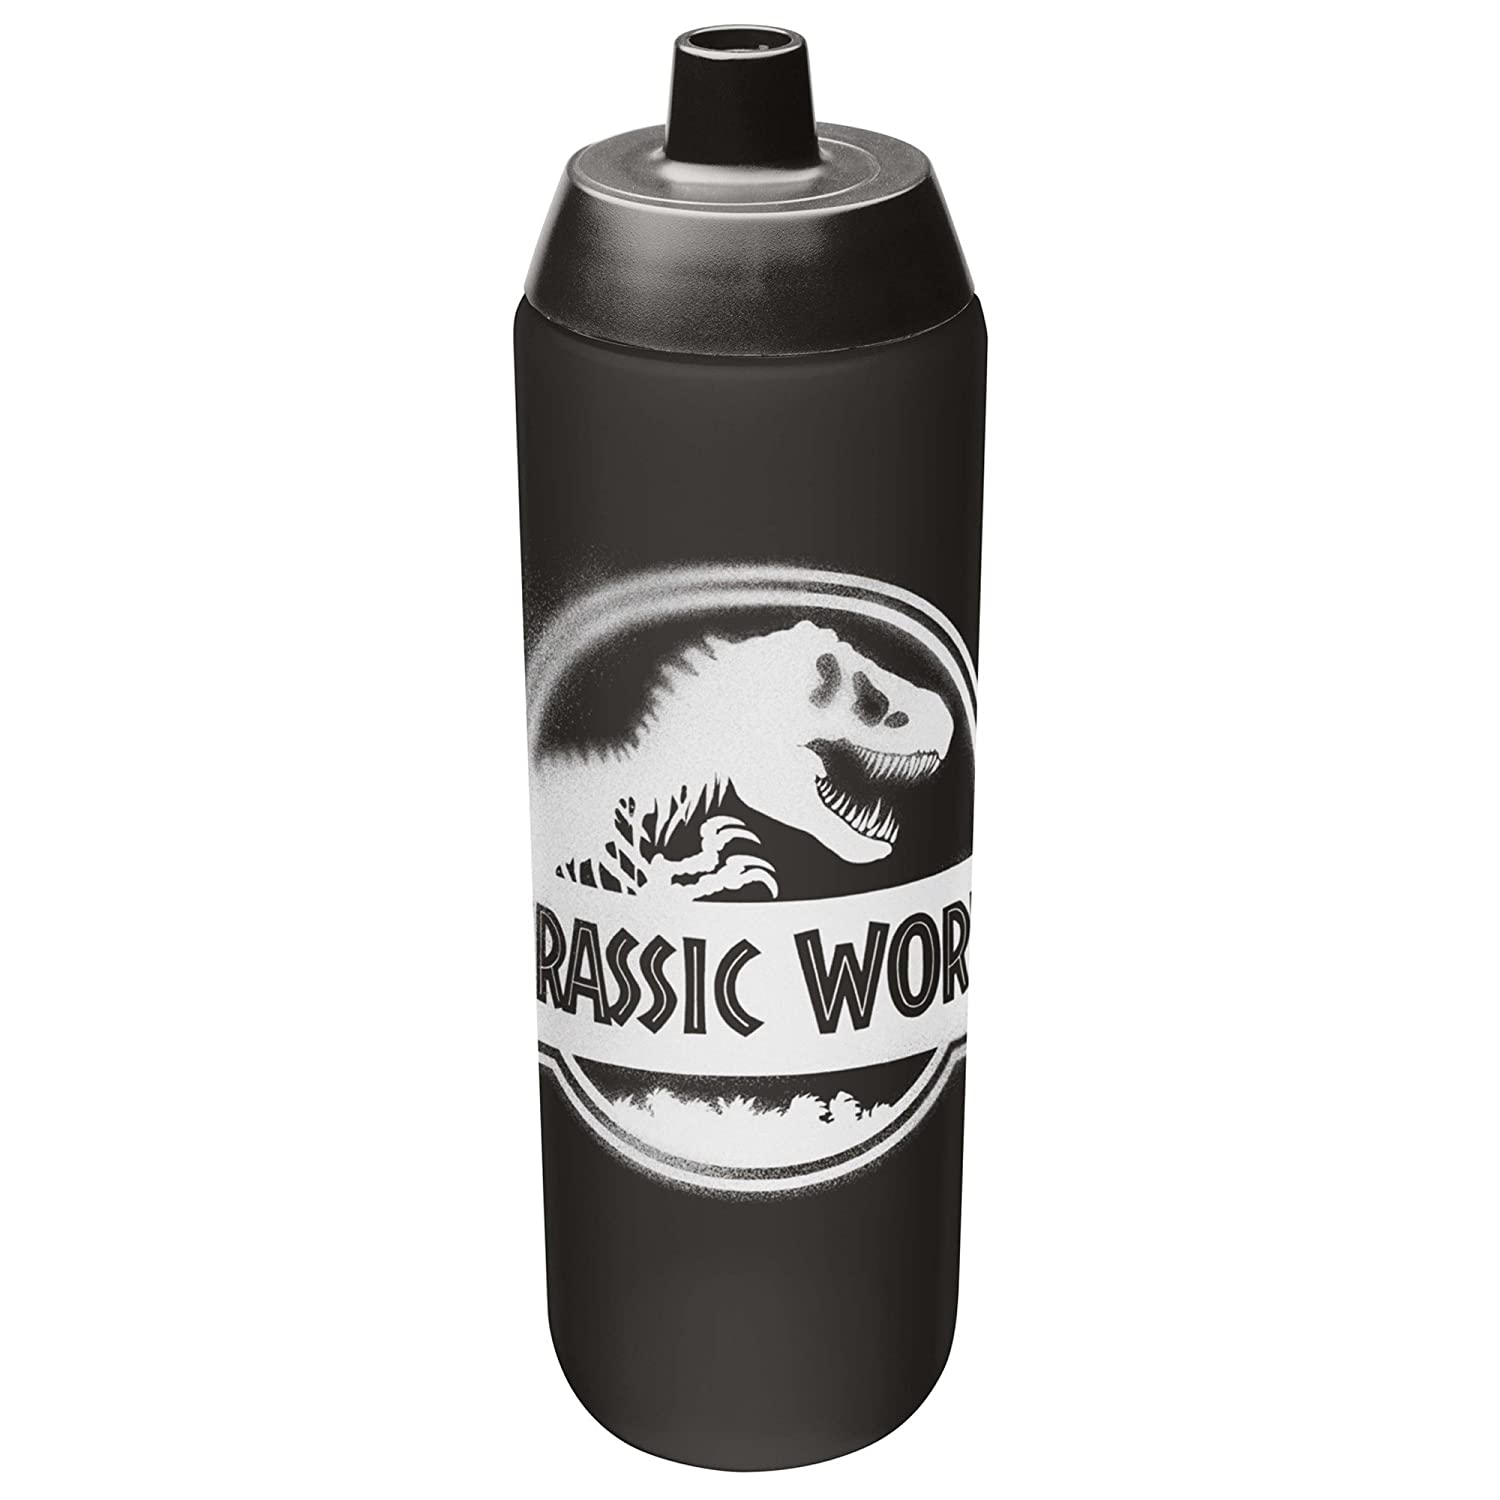 Zak Designs Jurassic World 2 15 oz. Stainless Steel Bottle, Jurassic World 2 JURD-S730